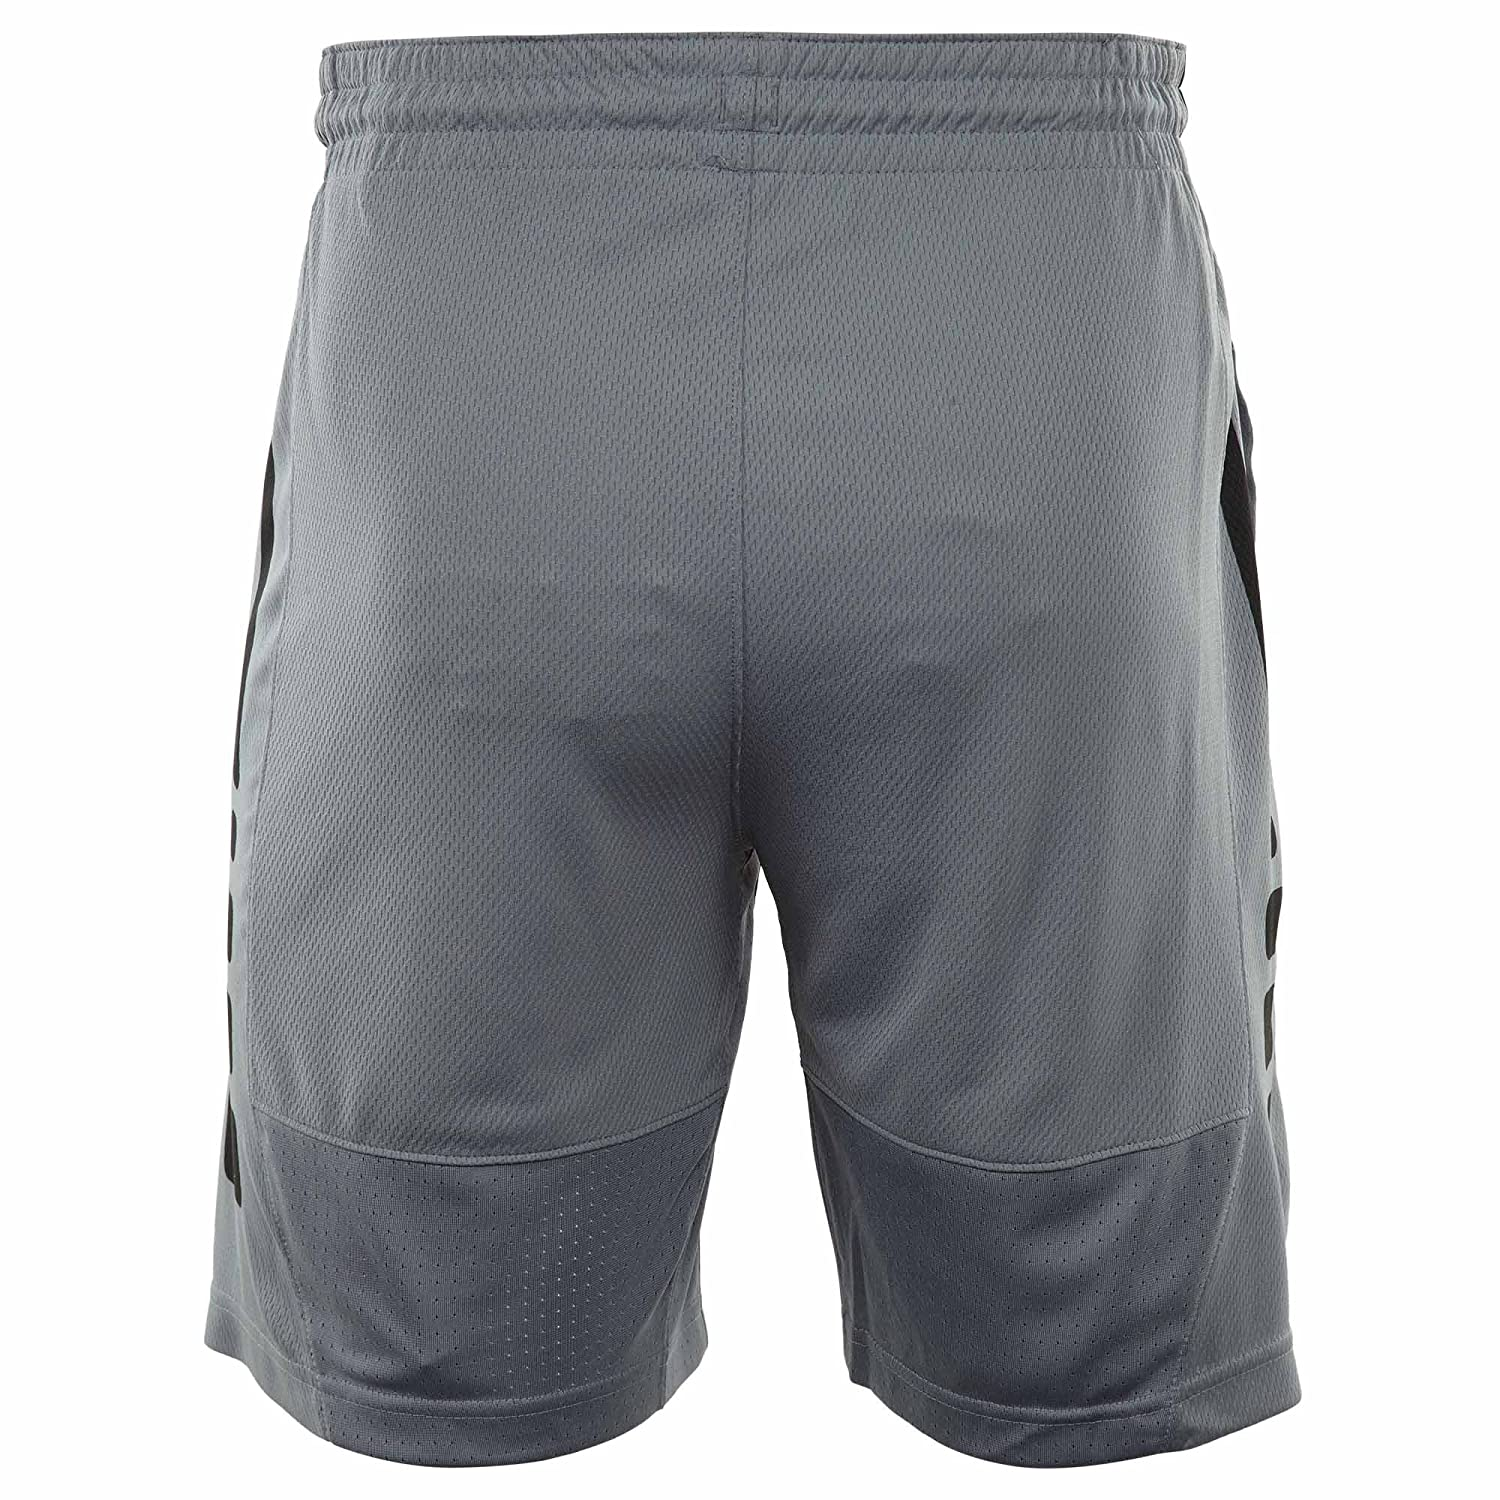 c30b82f6140f Nike Men39s 9 Basketball Shorts in 2019 Products t Nike